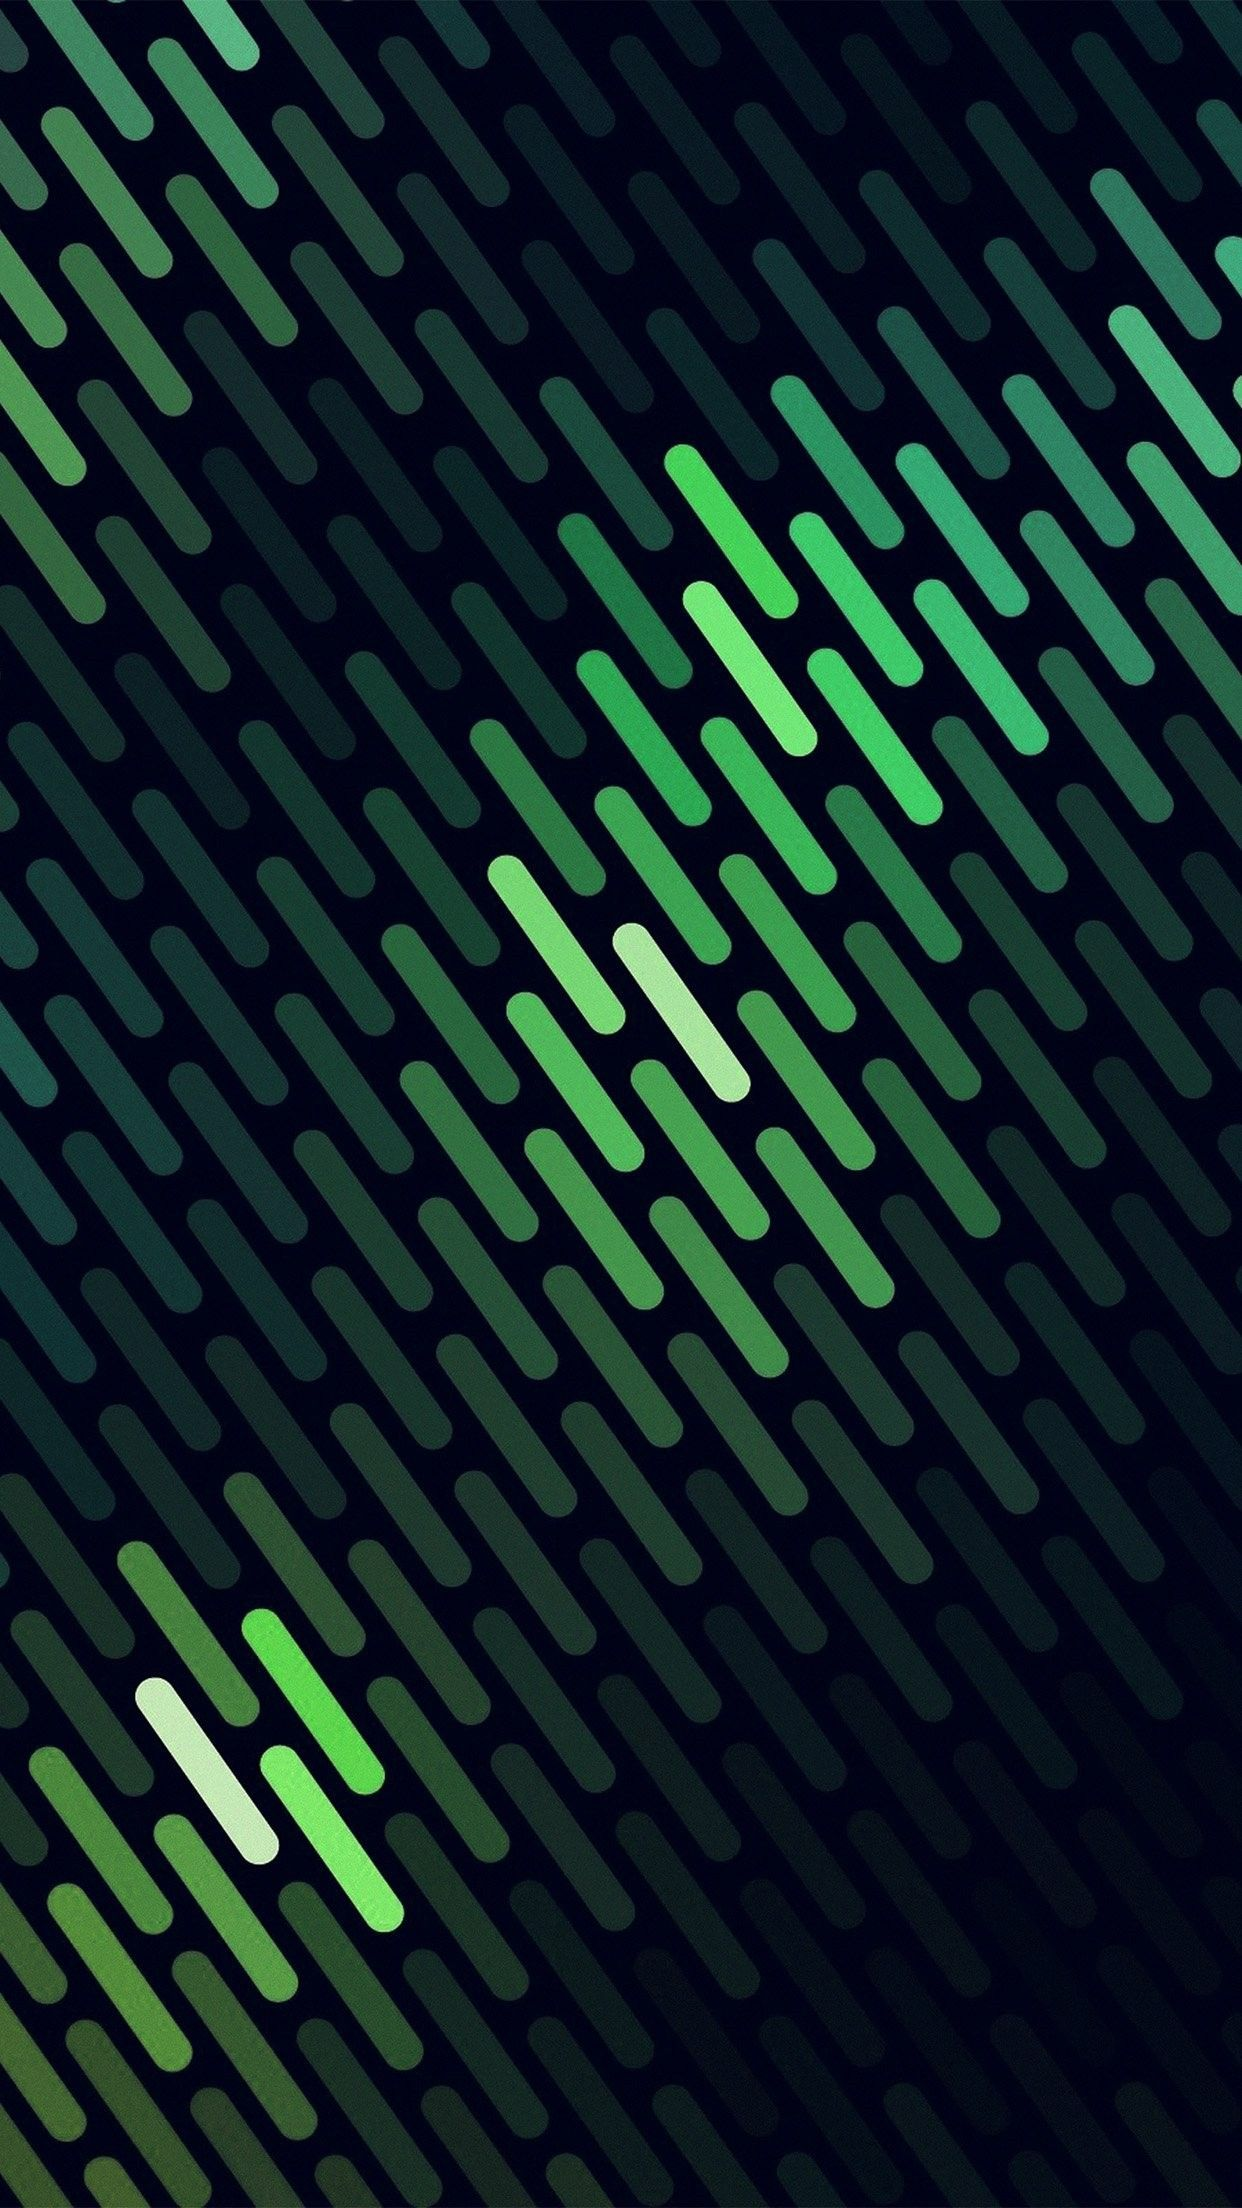 1242x2208 Pin by Seán McM on cc design | Pinterest | Wallpaper, Patterns and ...